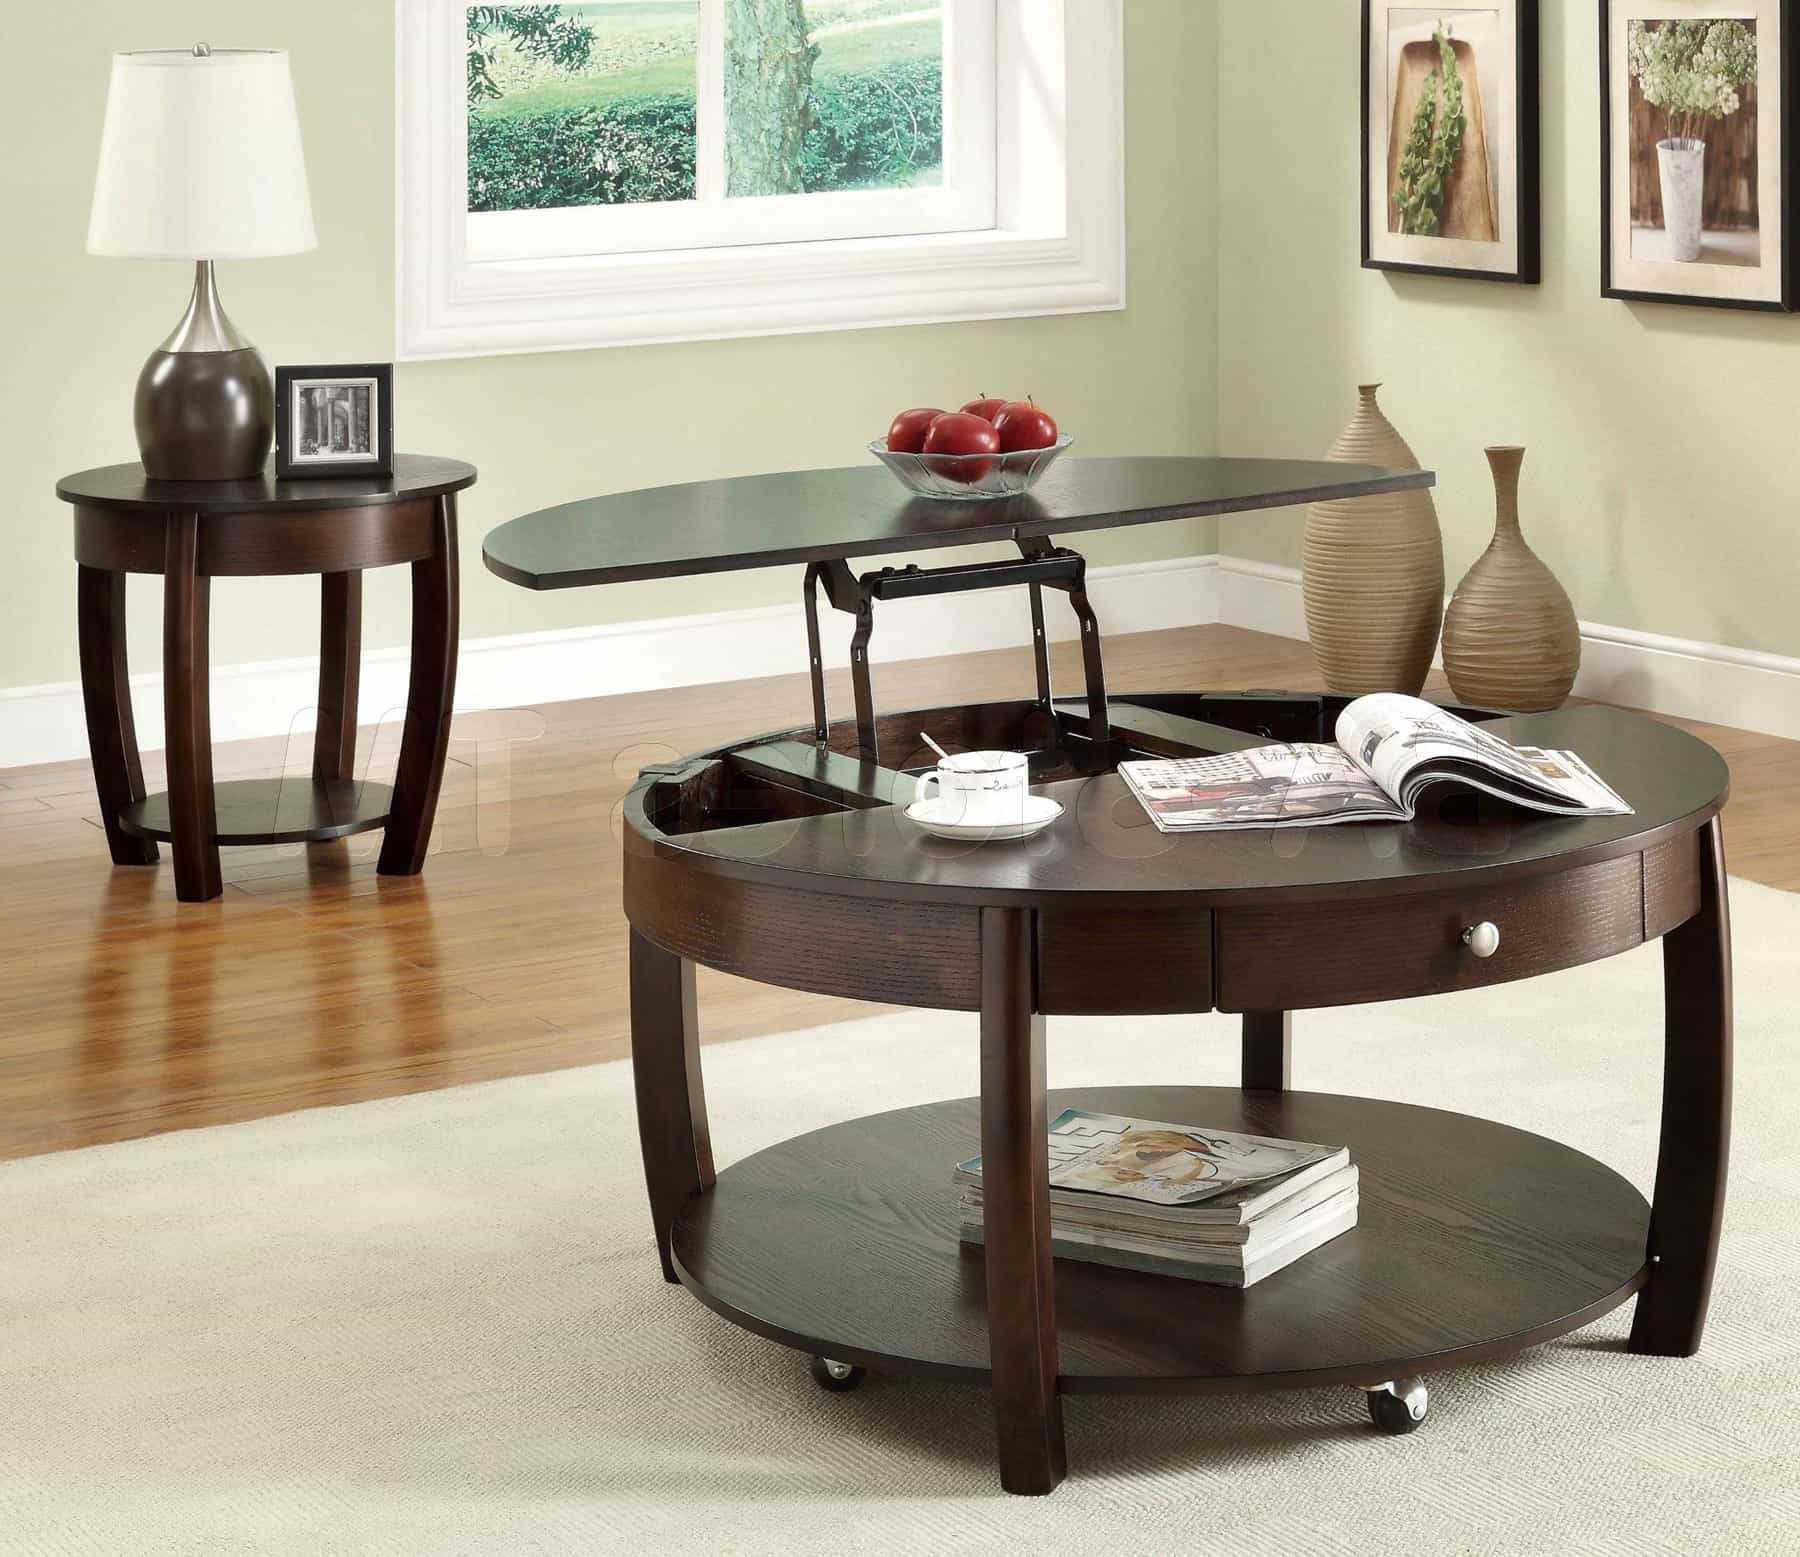 Art Deco Coffee Table Furniture Set (Image 1 of 30)